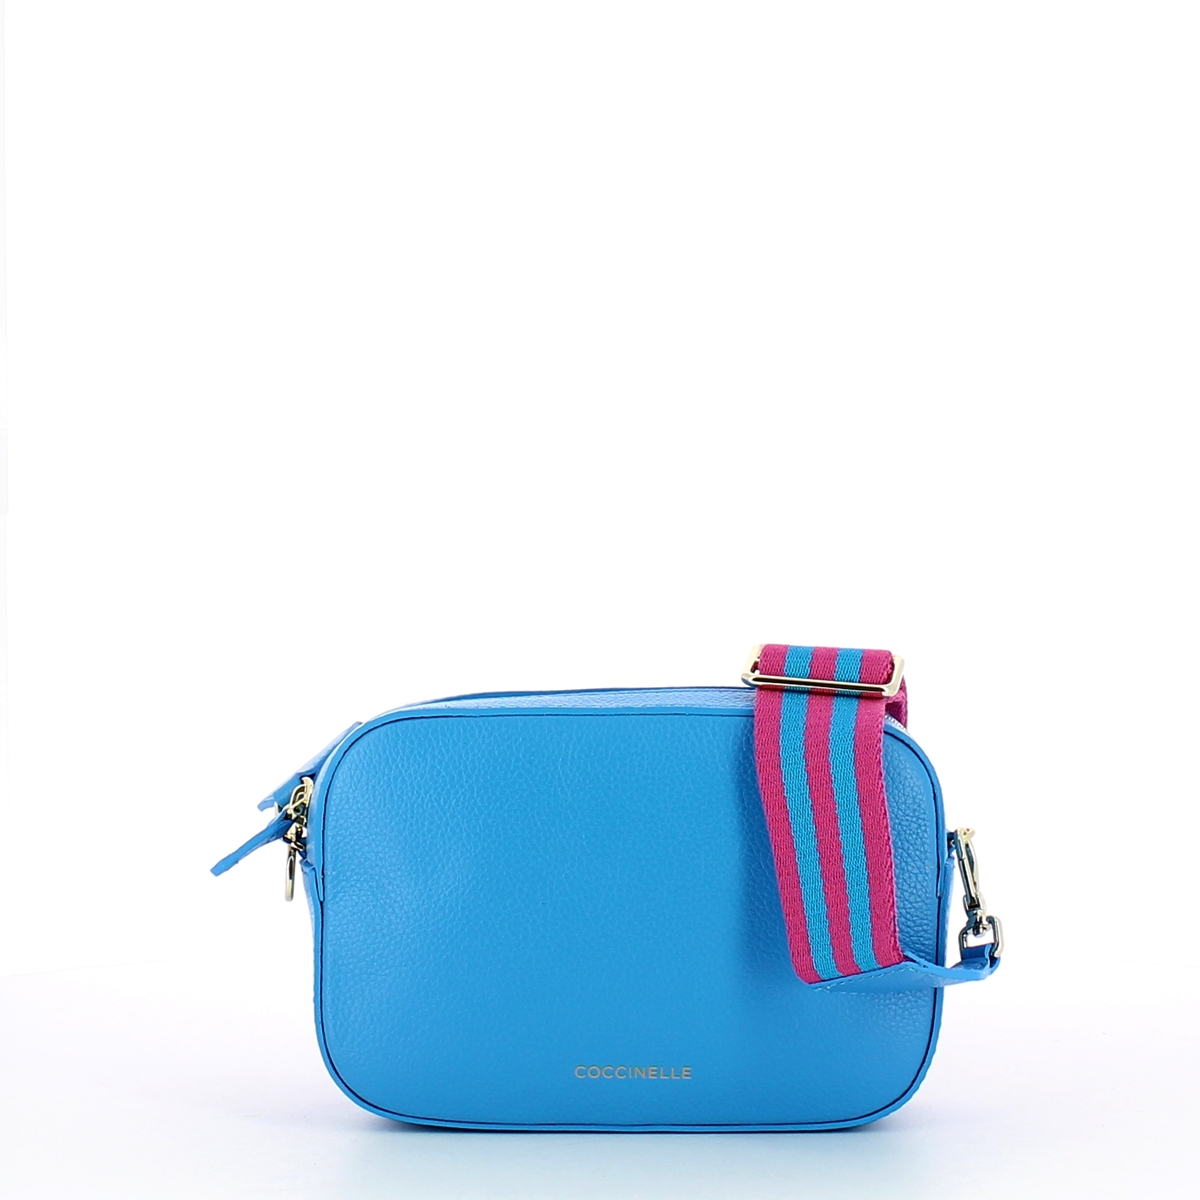 MINI MINI BAG SIGNAL BLUE